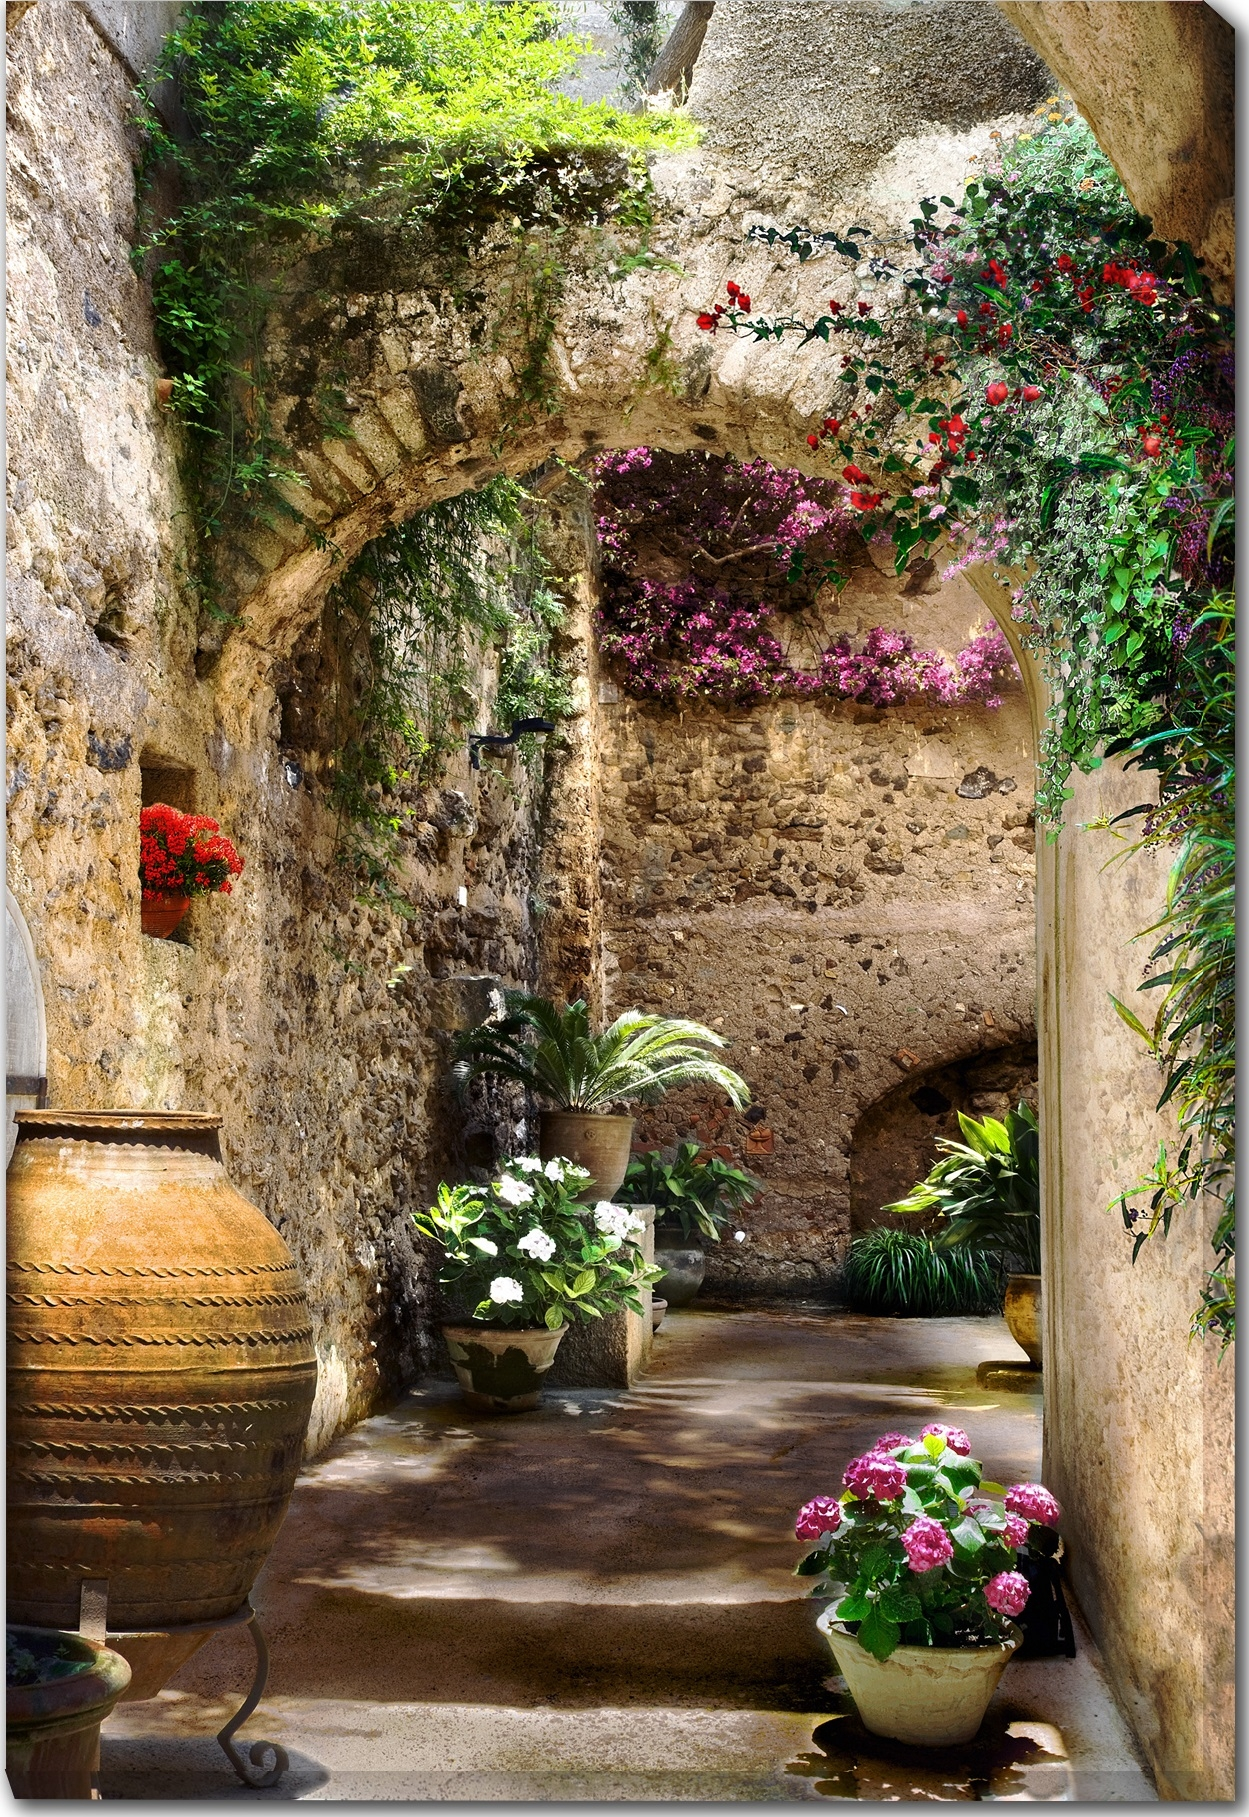 Canvas Wall Art Aragonese Arches Product Photo